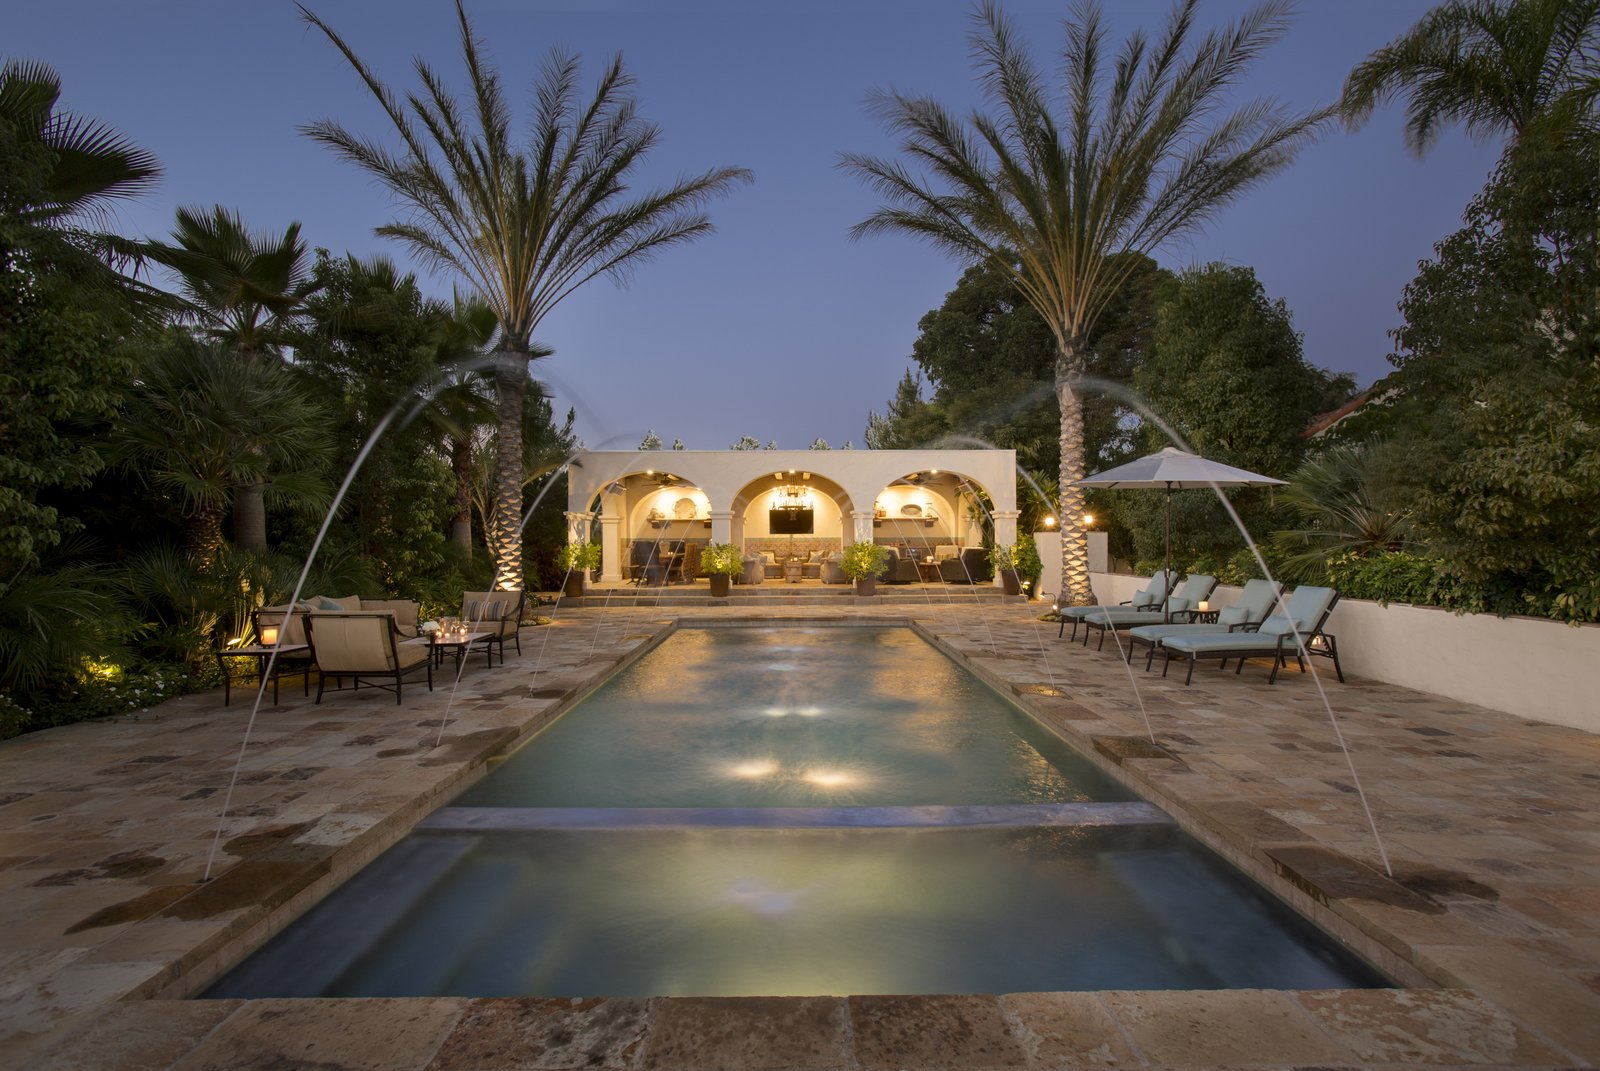 Photo 1 of 9 in Just Listed at $4M, This Spanish Colonial Revival in Southern California Promises Resort-Like Living